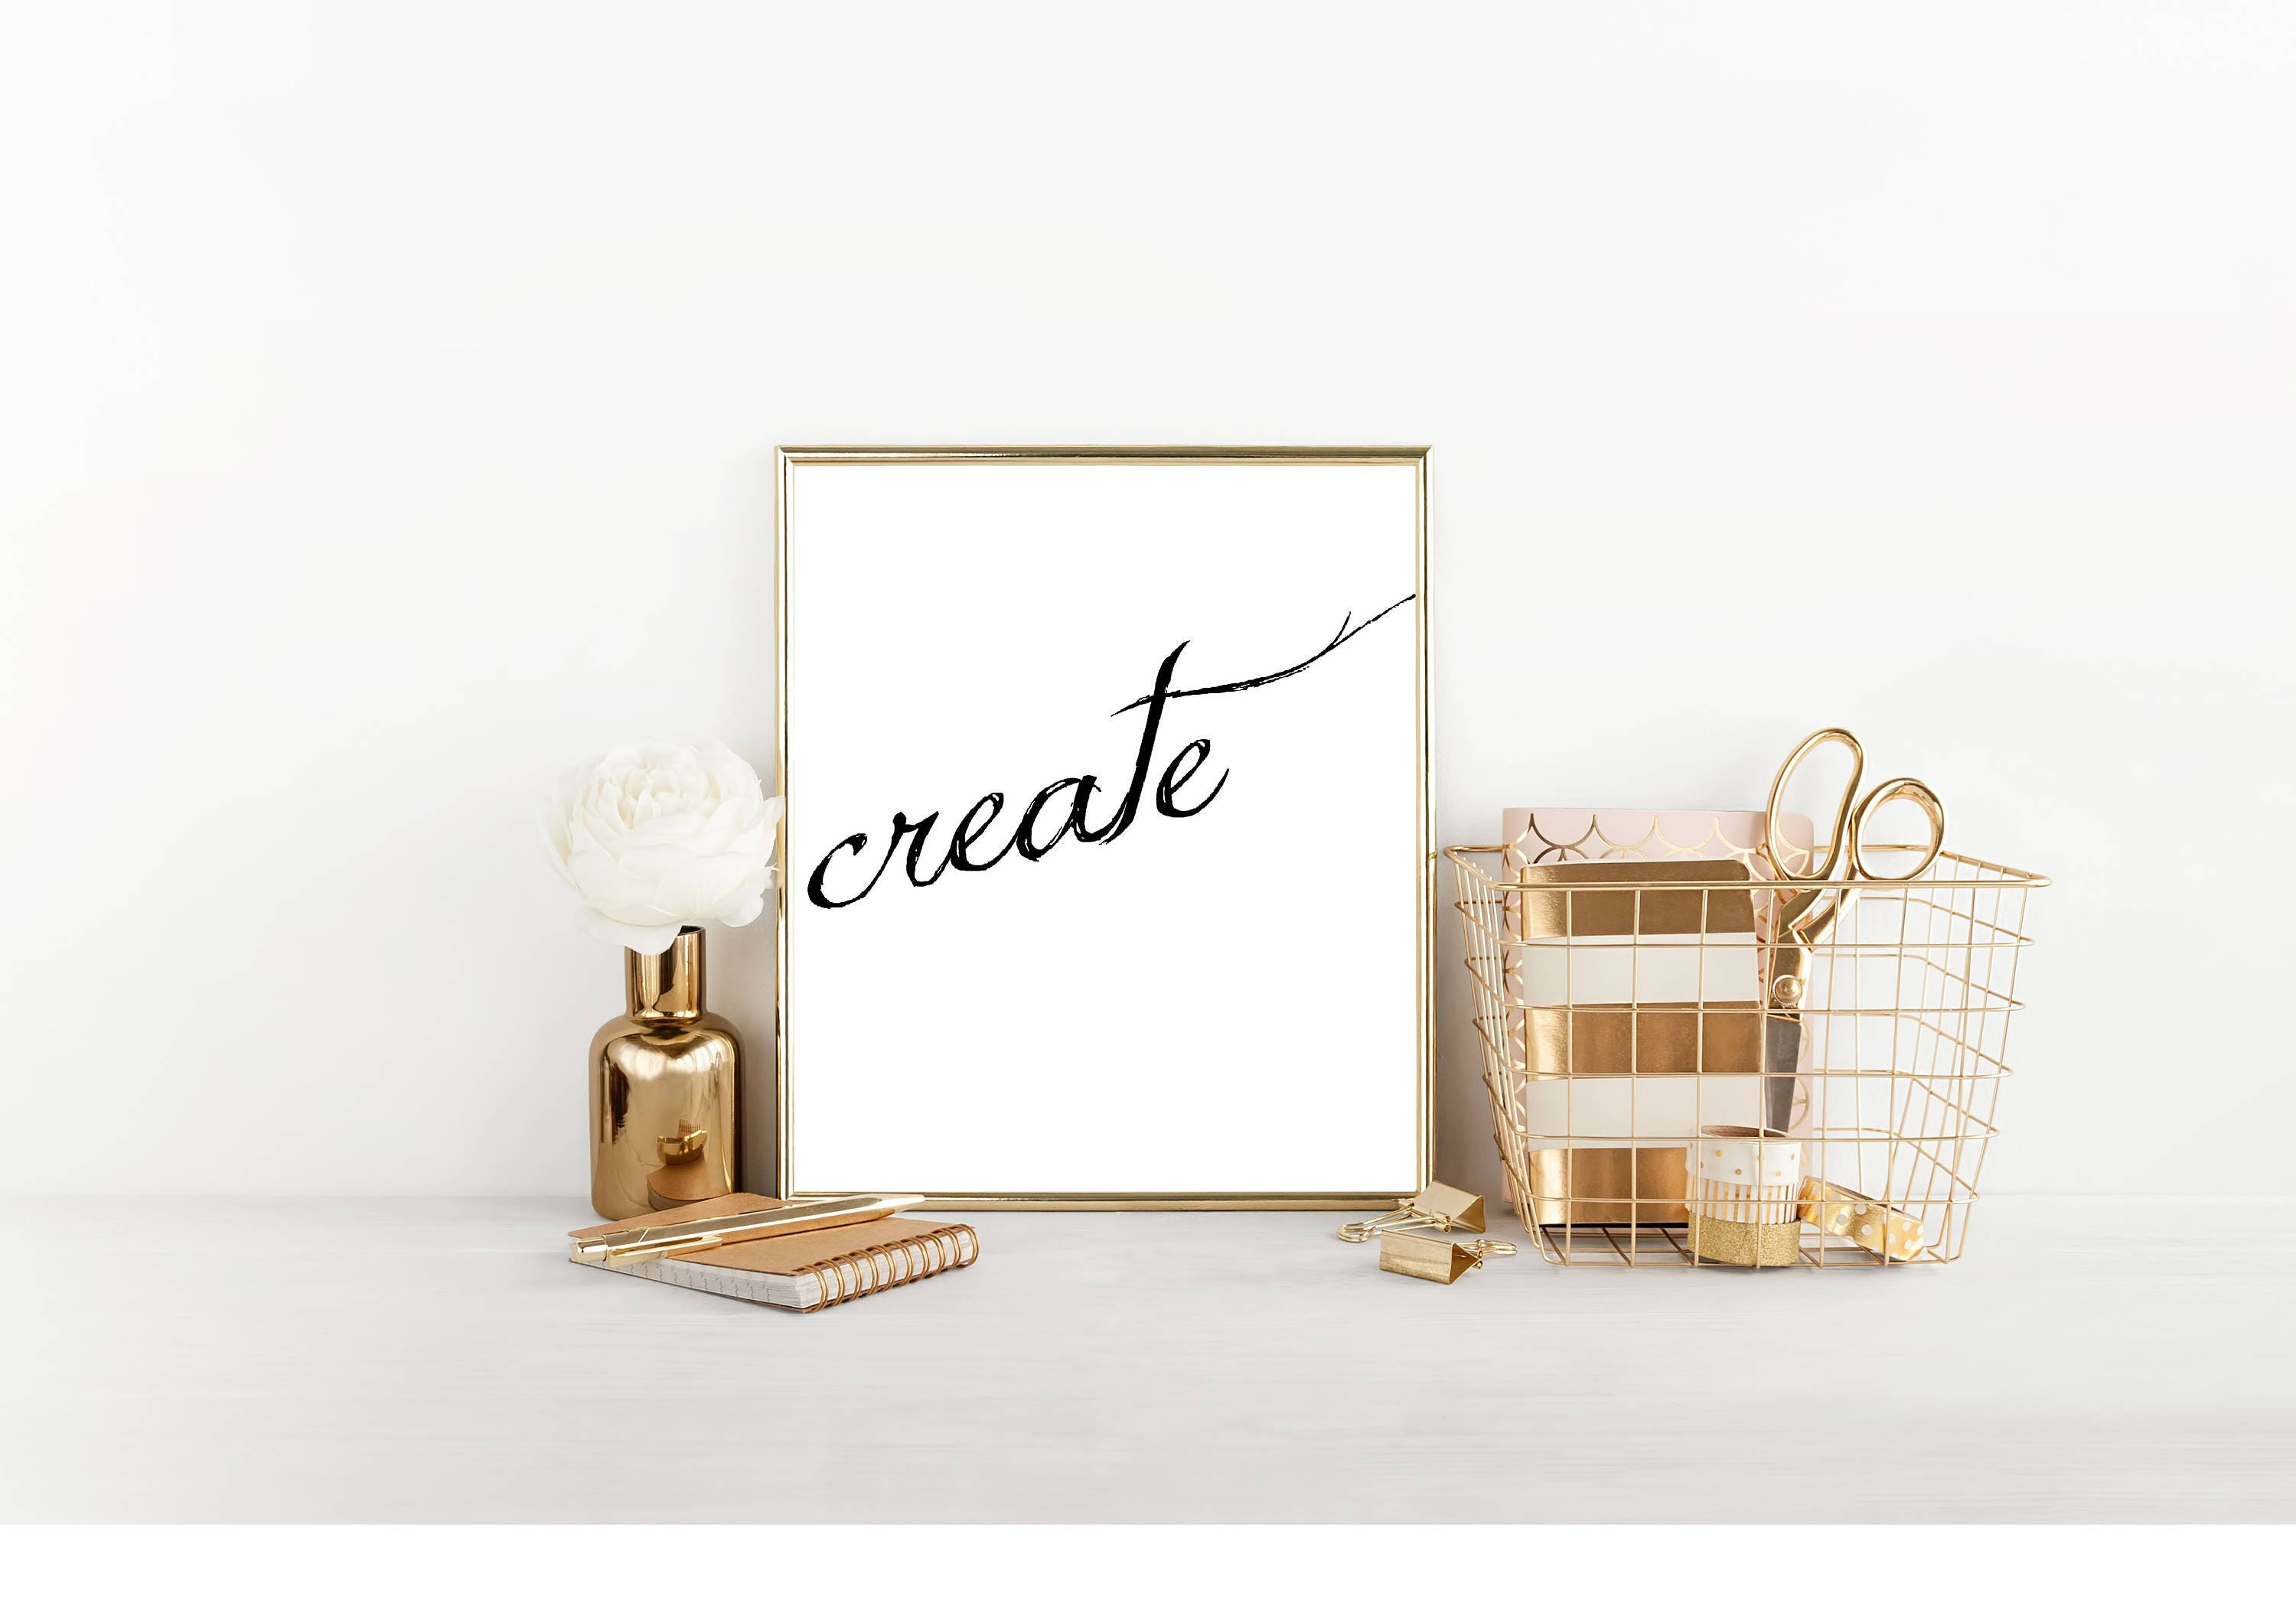 Create digital print cubicle decor cubicle wall decor for Cubicle wall decor